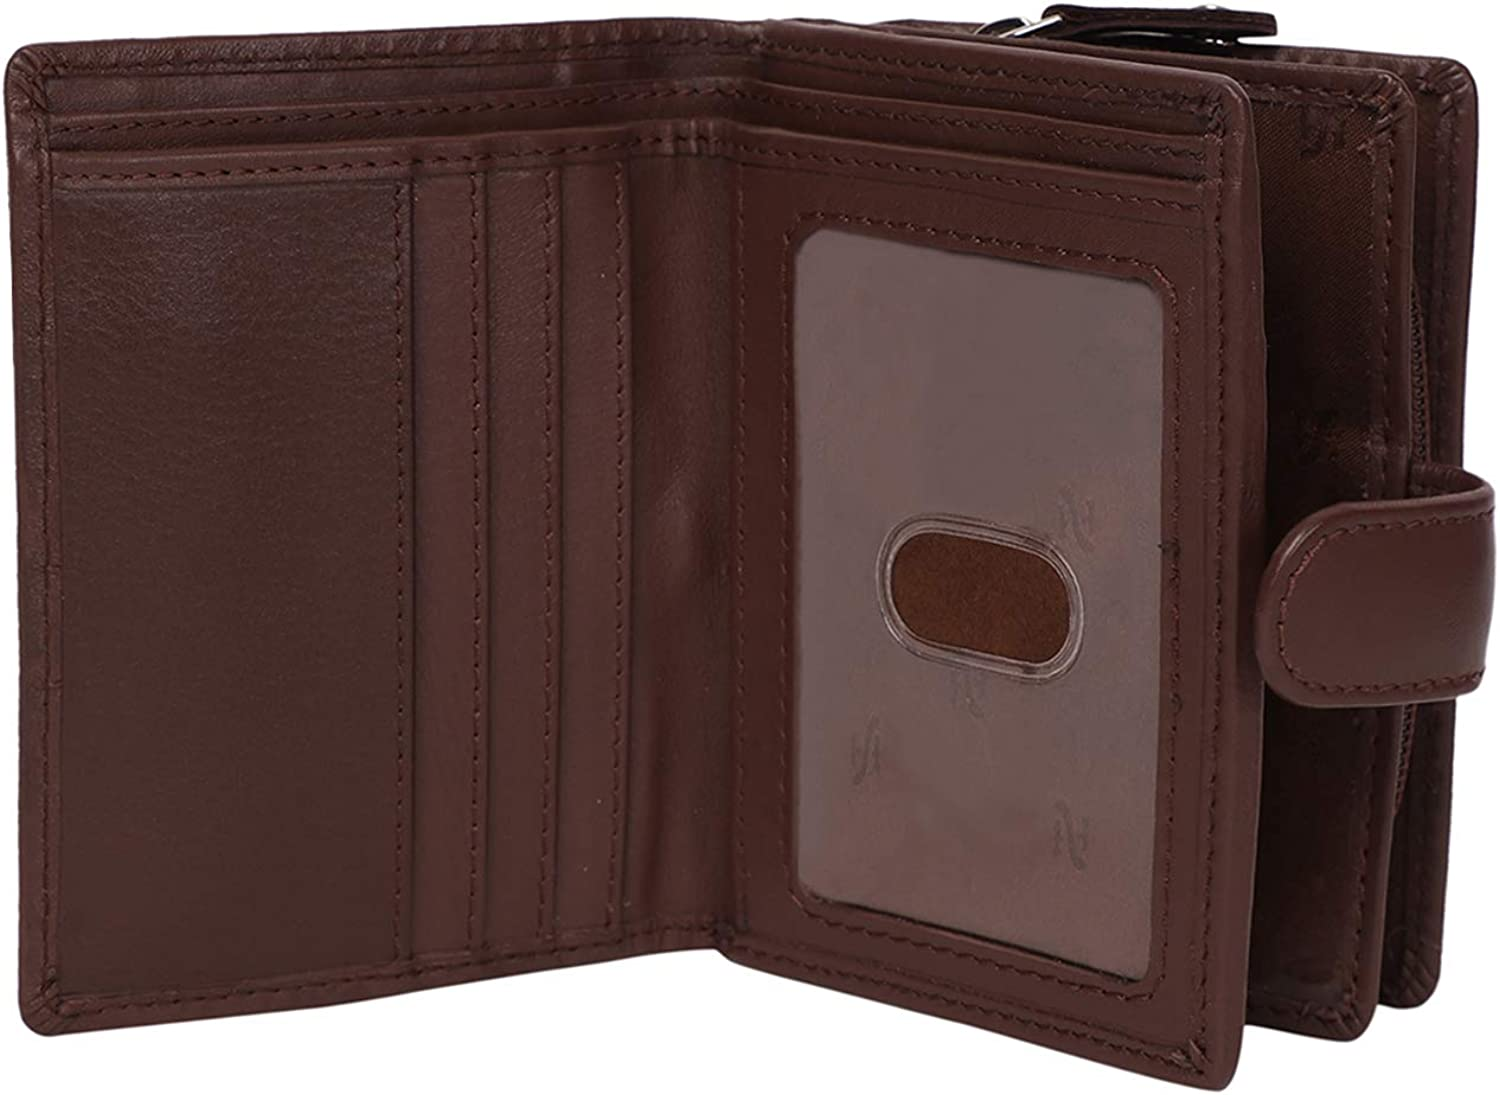 Tampa Mall STARHIDE Ladies RFID Blocking Genuine Max 40% OFF With Leather Clutch Wallet